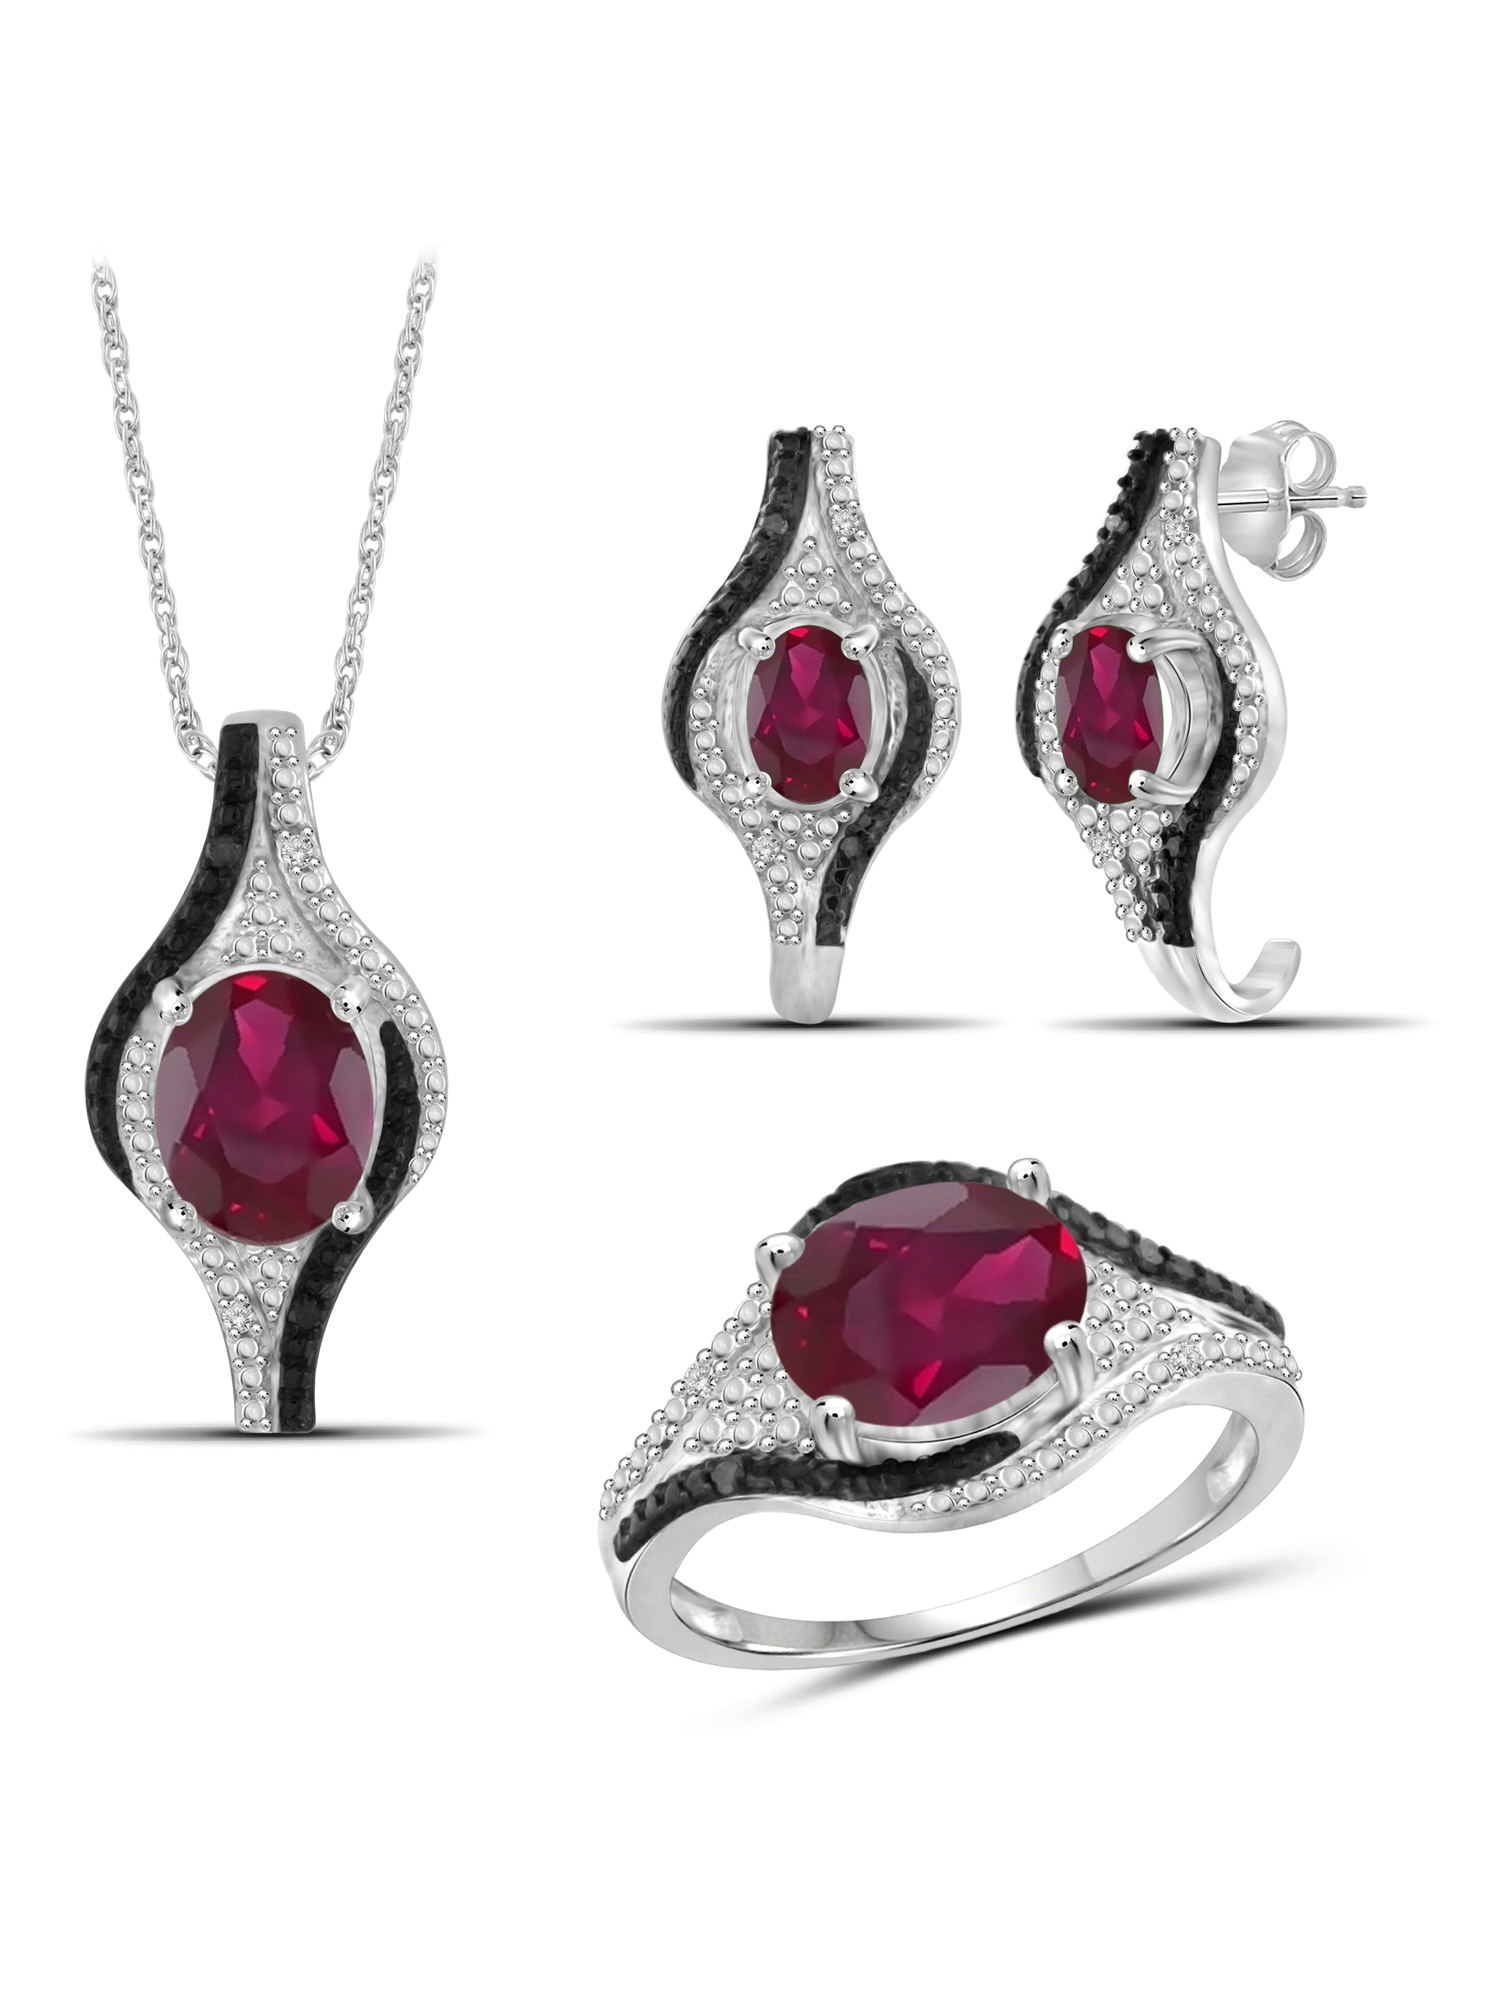 6.00 Carat T.G.W. Ruby And Black & White Diamond Accent Sterling Silver 3-Piece Jewelry set